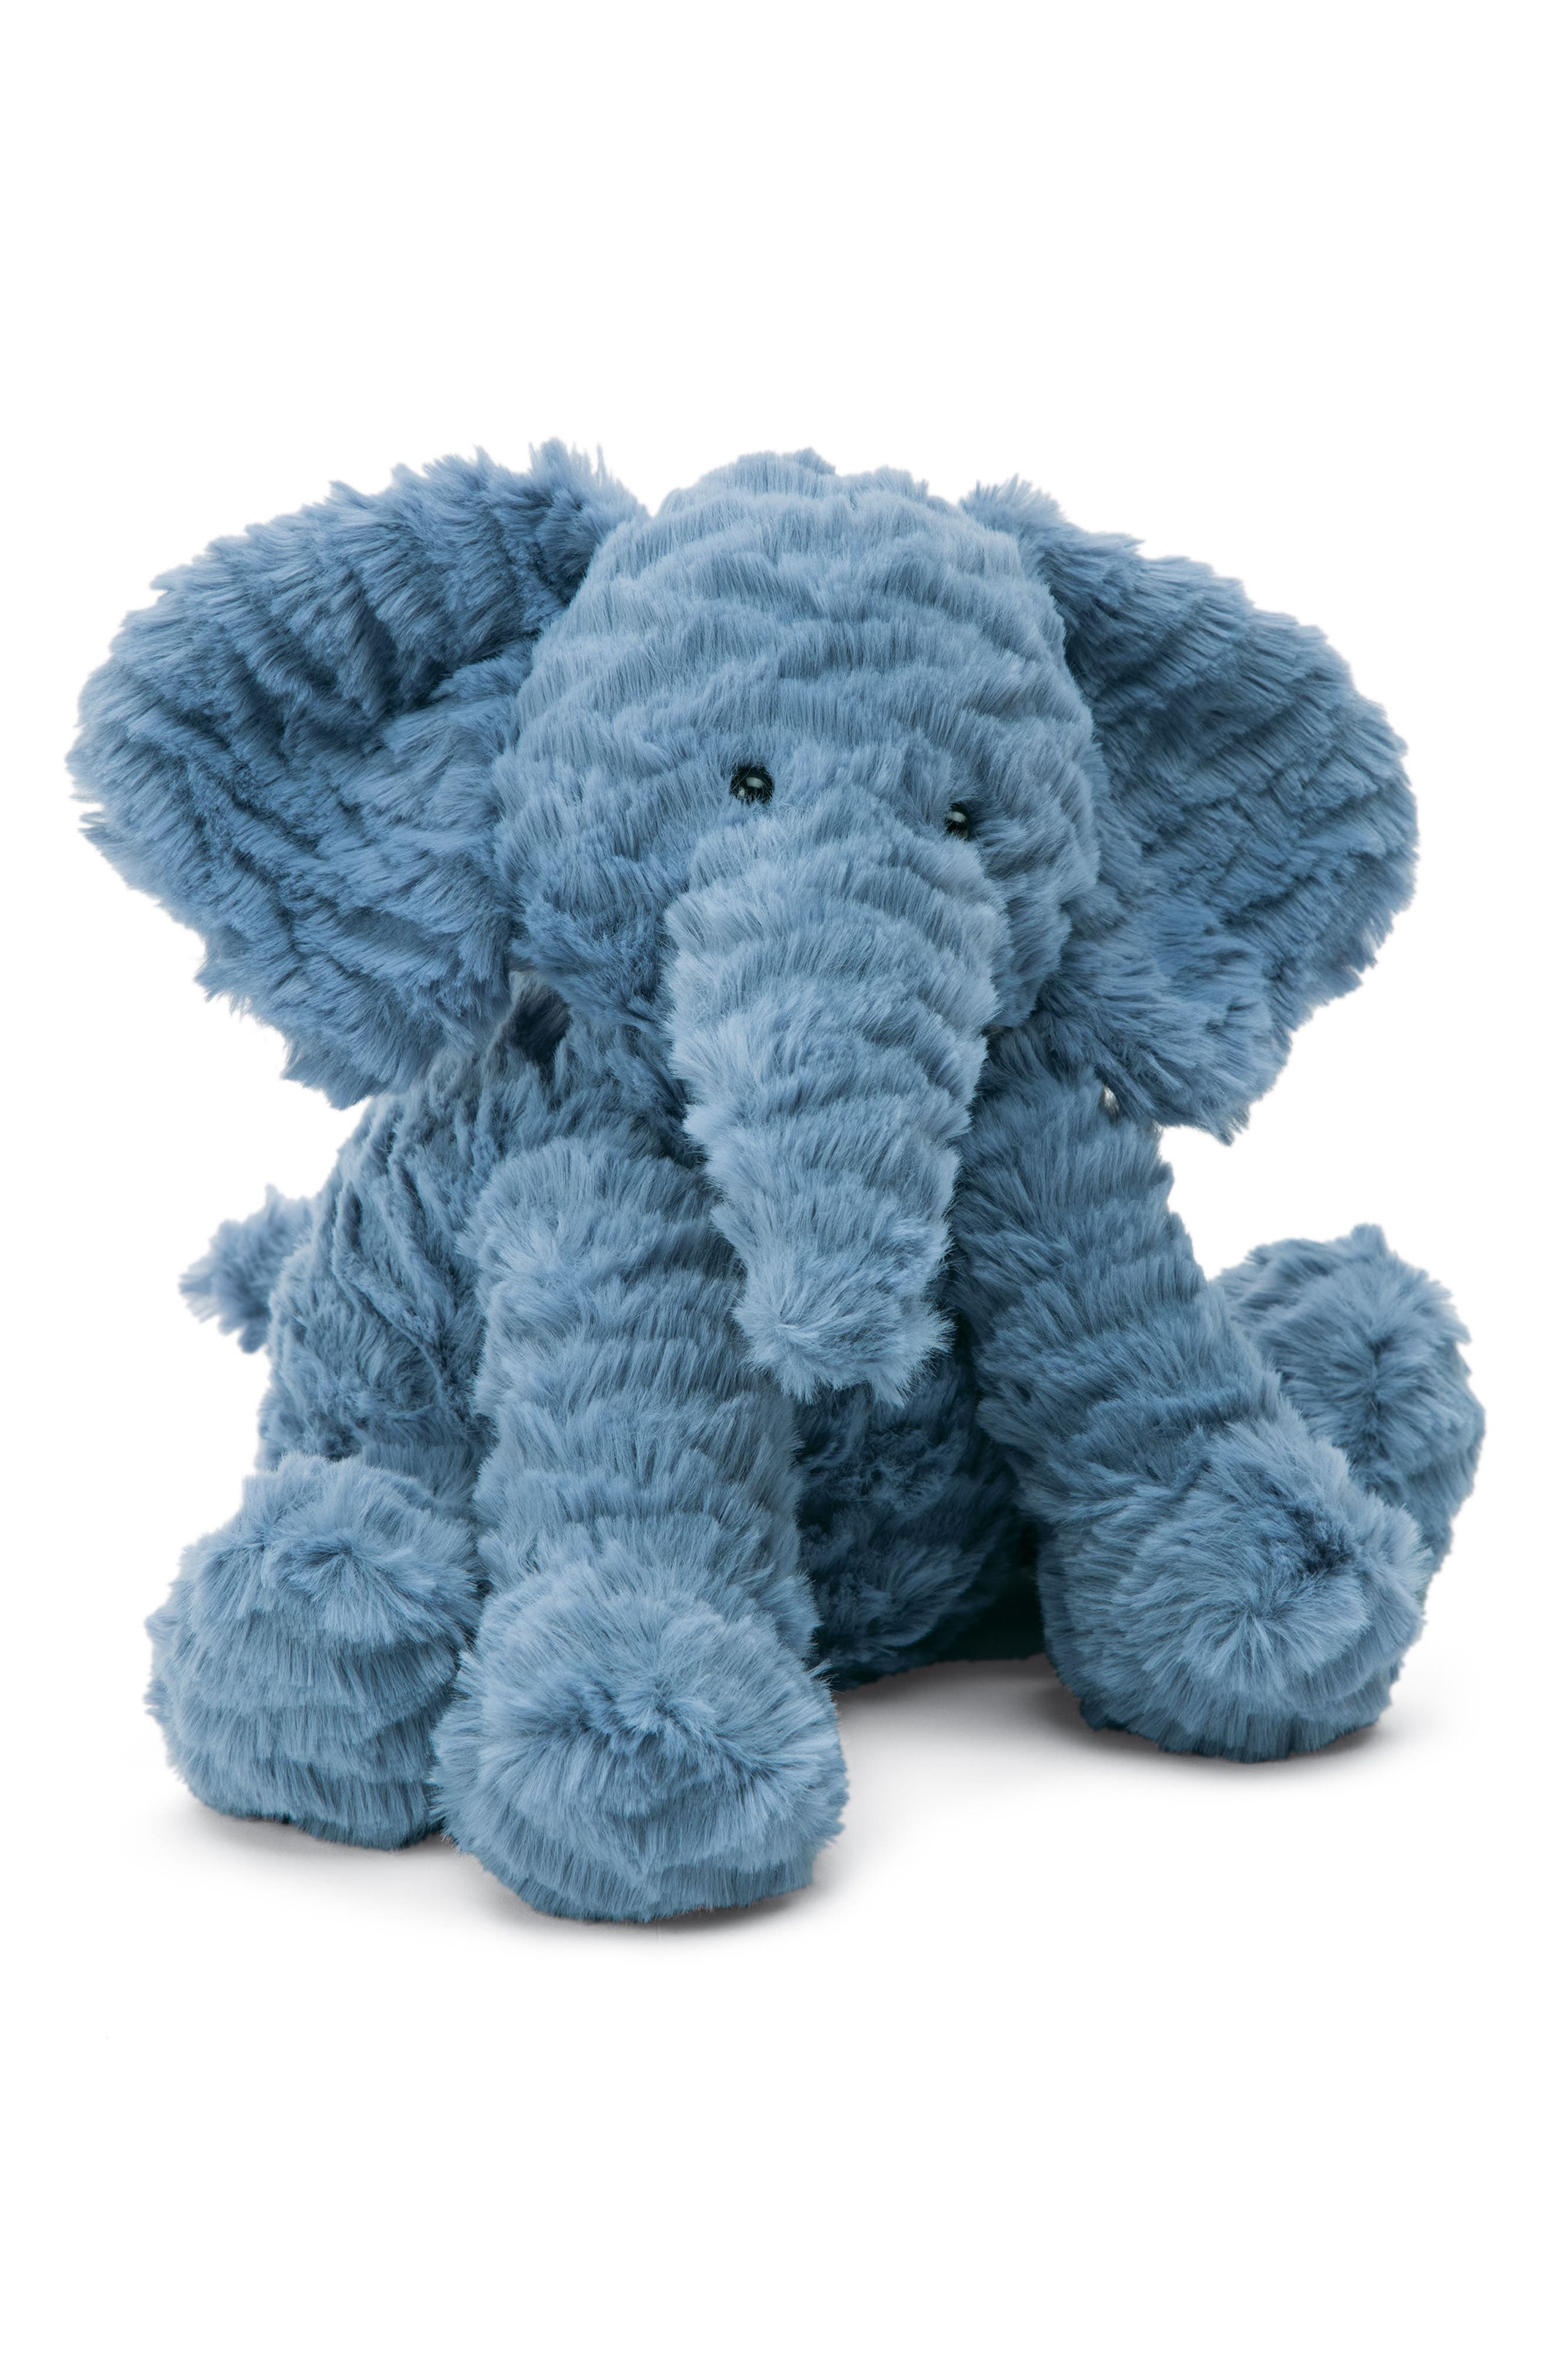 Fuddlewuddle Elephant Stuffed Animal,                         Main,                         color, 450